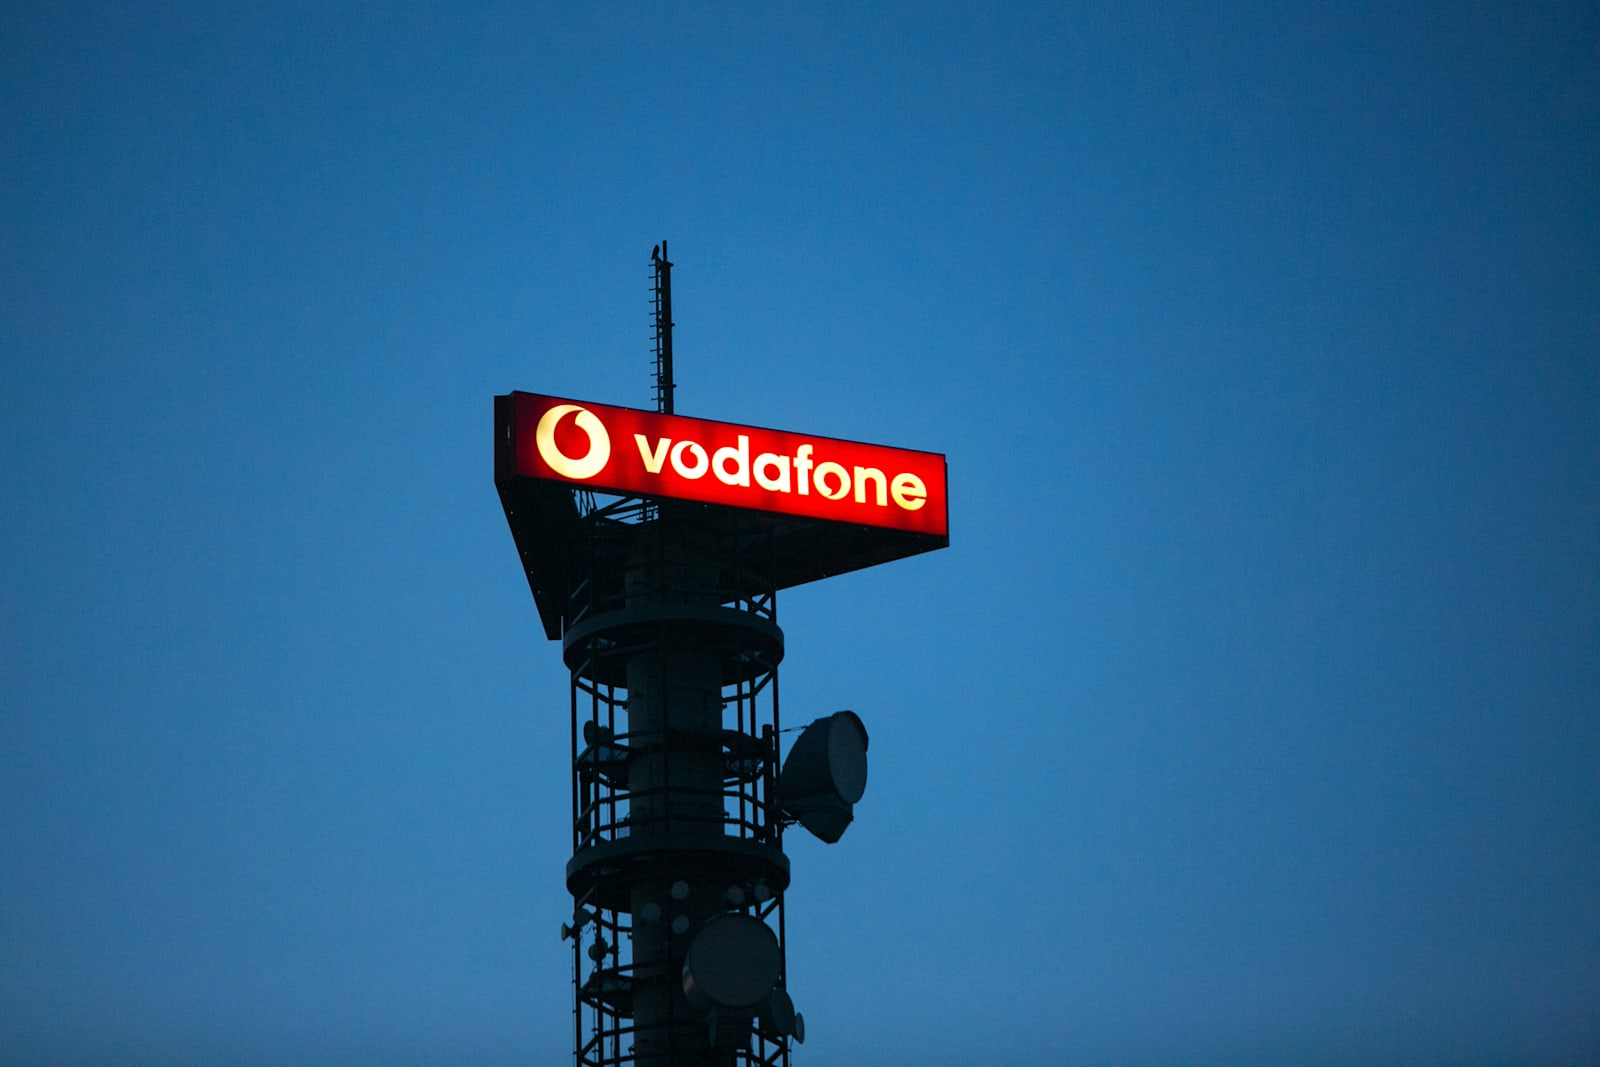 Vodafone Payg Top Up >> Vodafone Fined 4 6m After Payg Top Up Fails